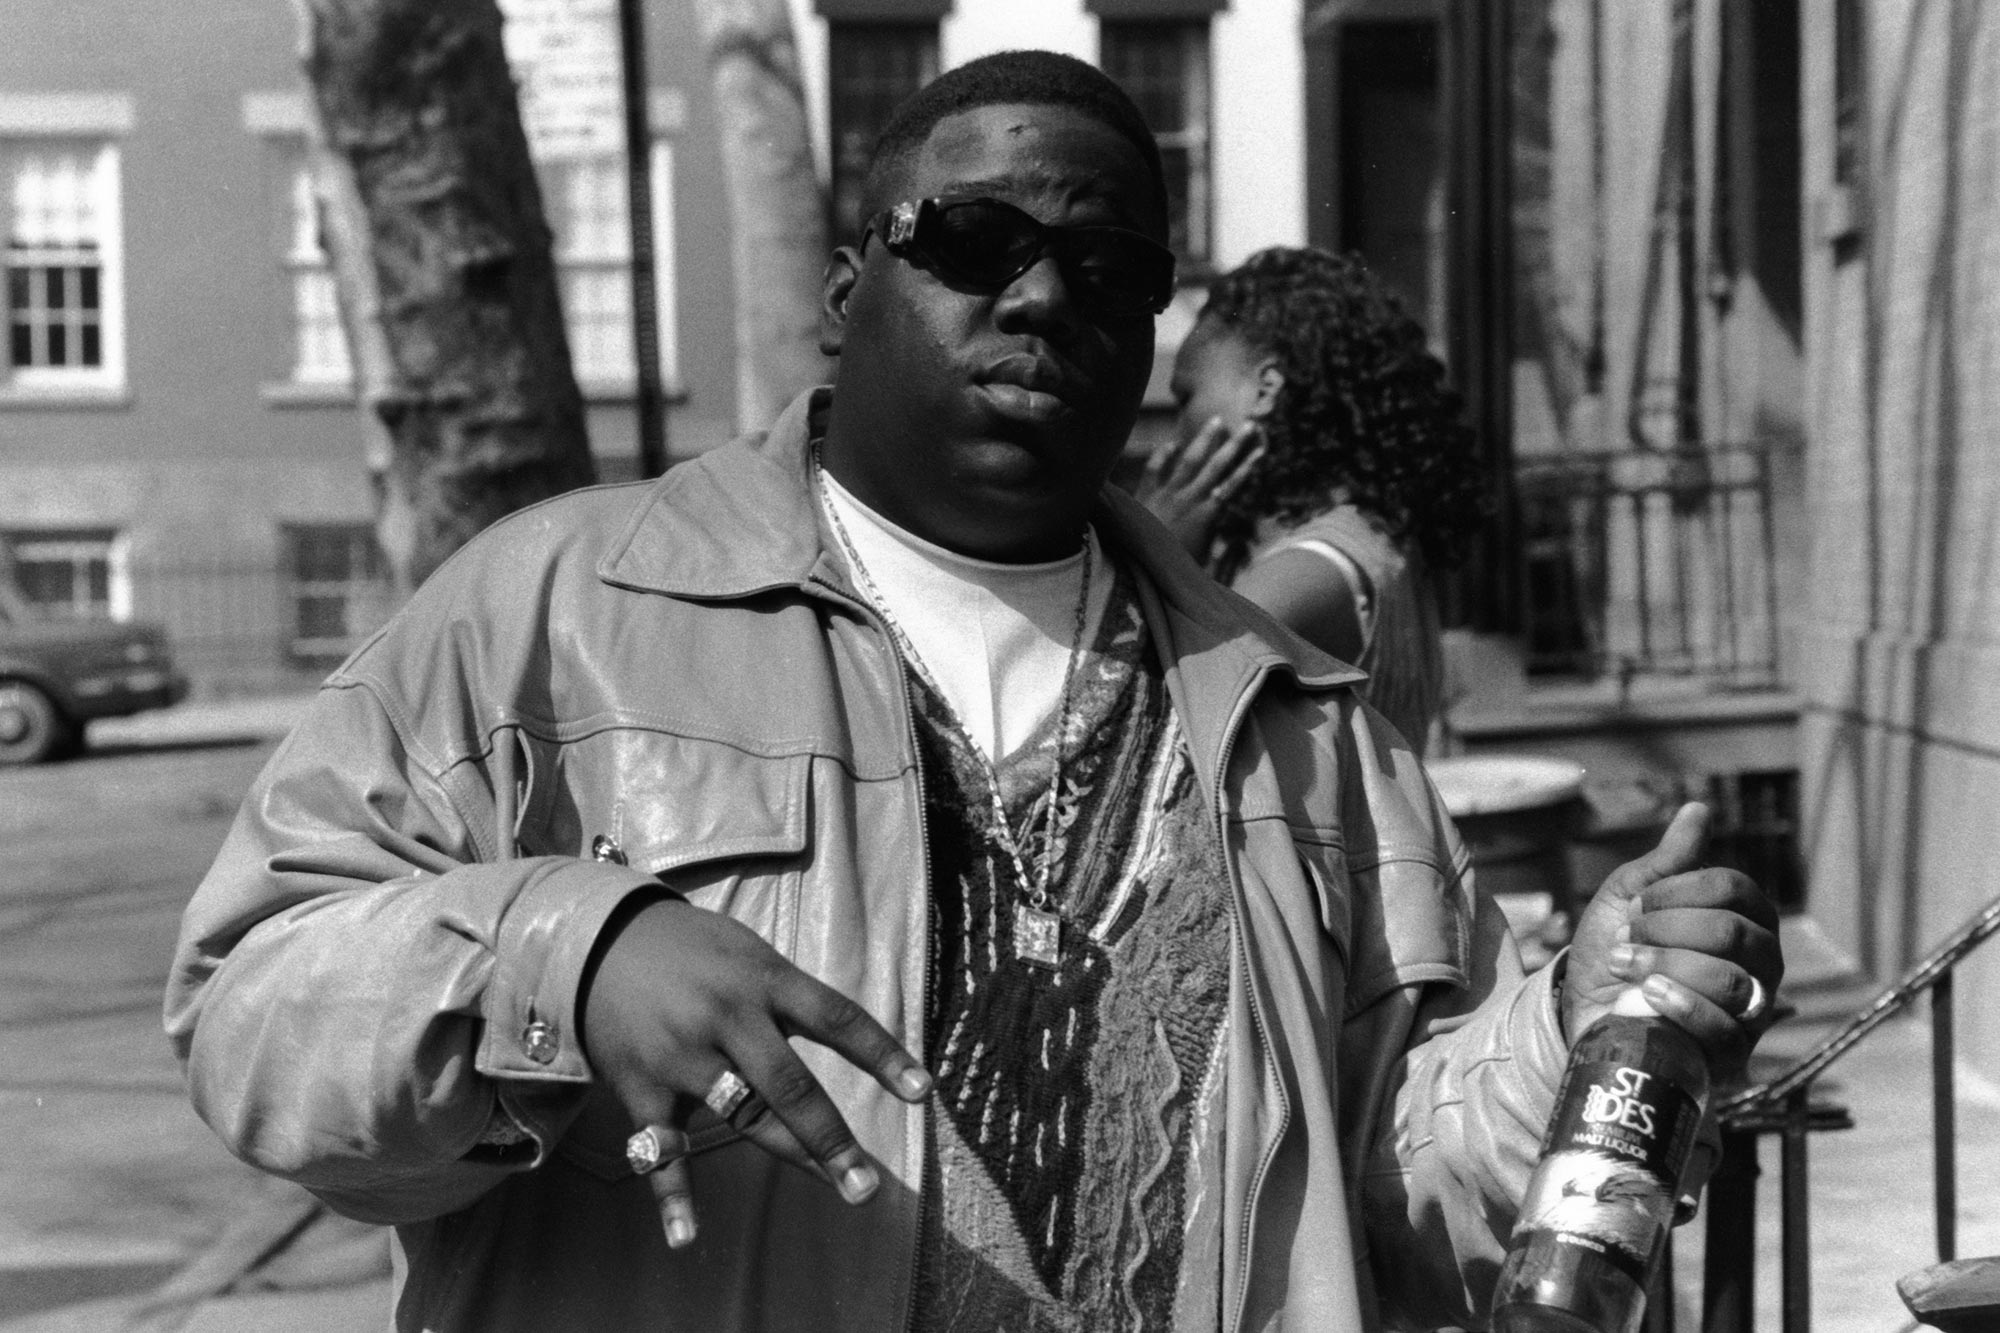 Biggie Smalls: I Got a Story to Tell